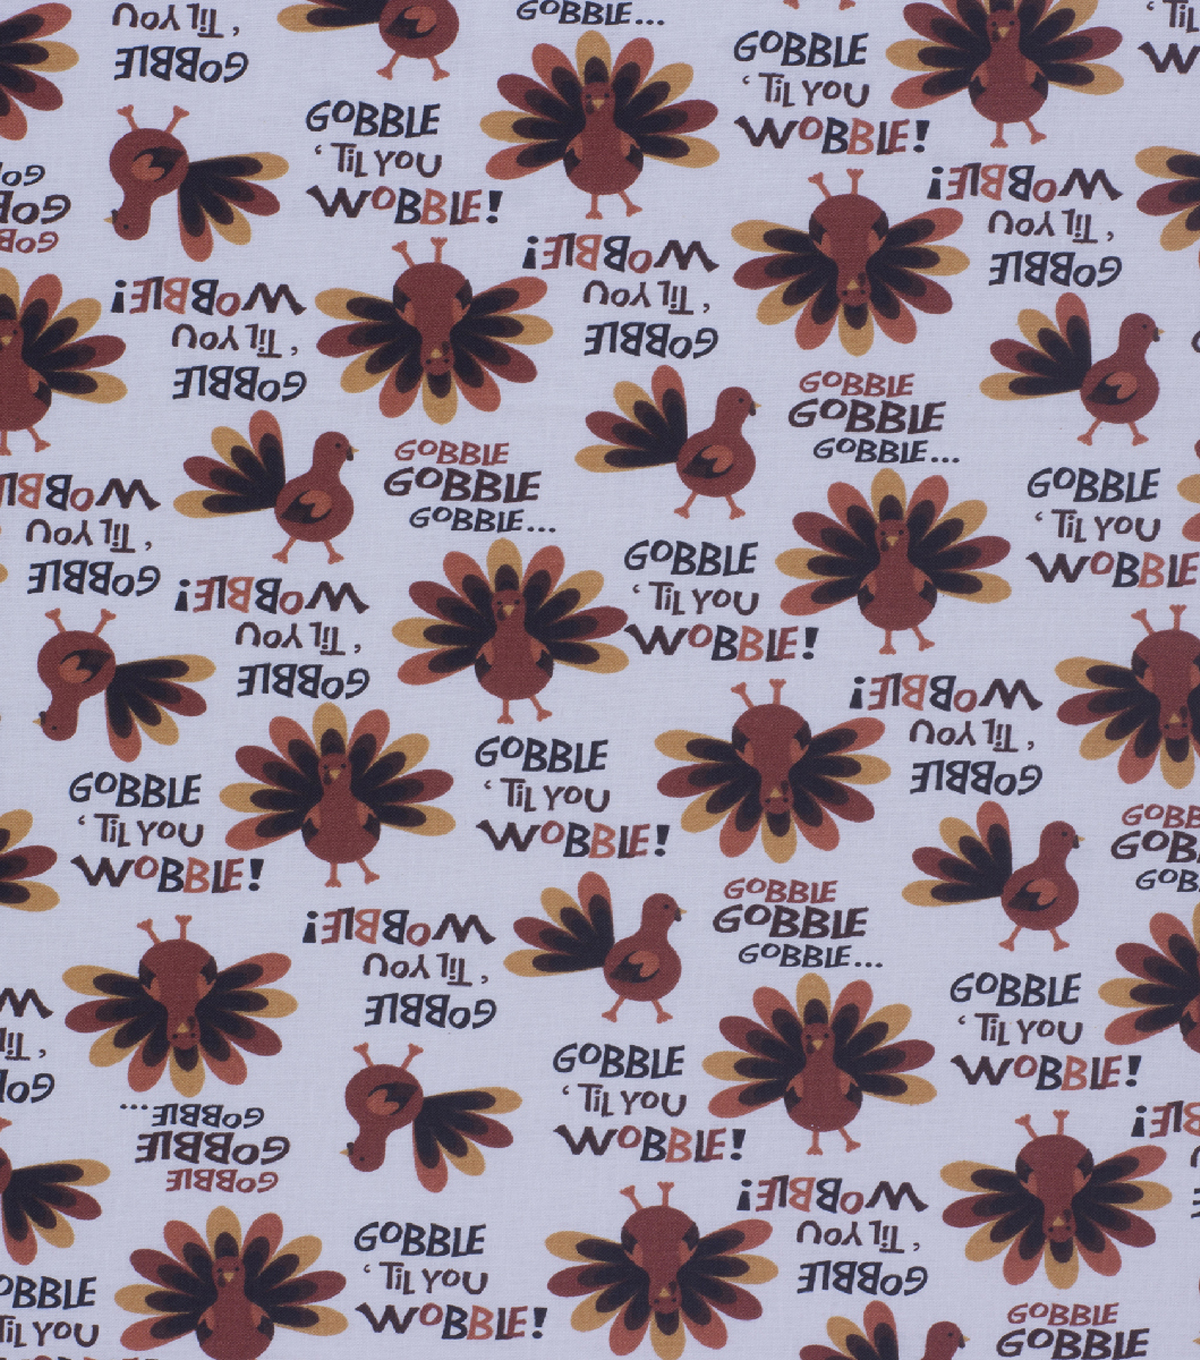 Harvest Cotton Fabric-Gobble Til You Wobble